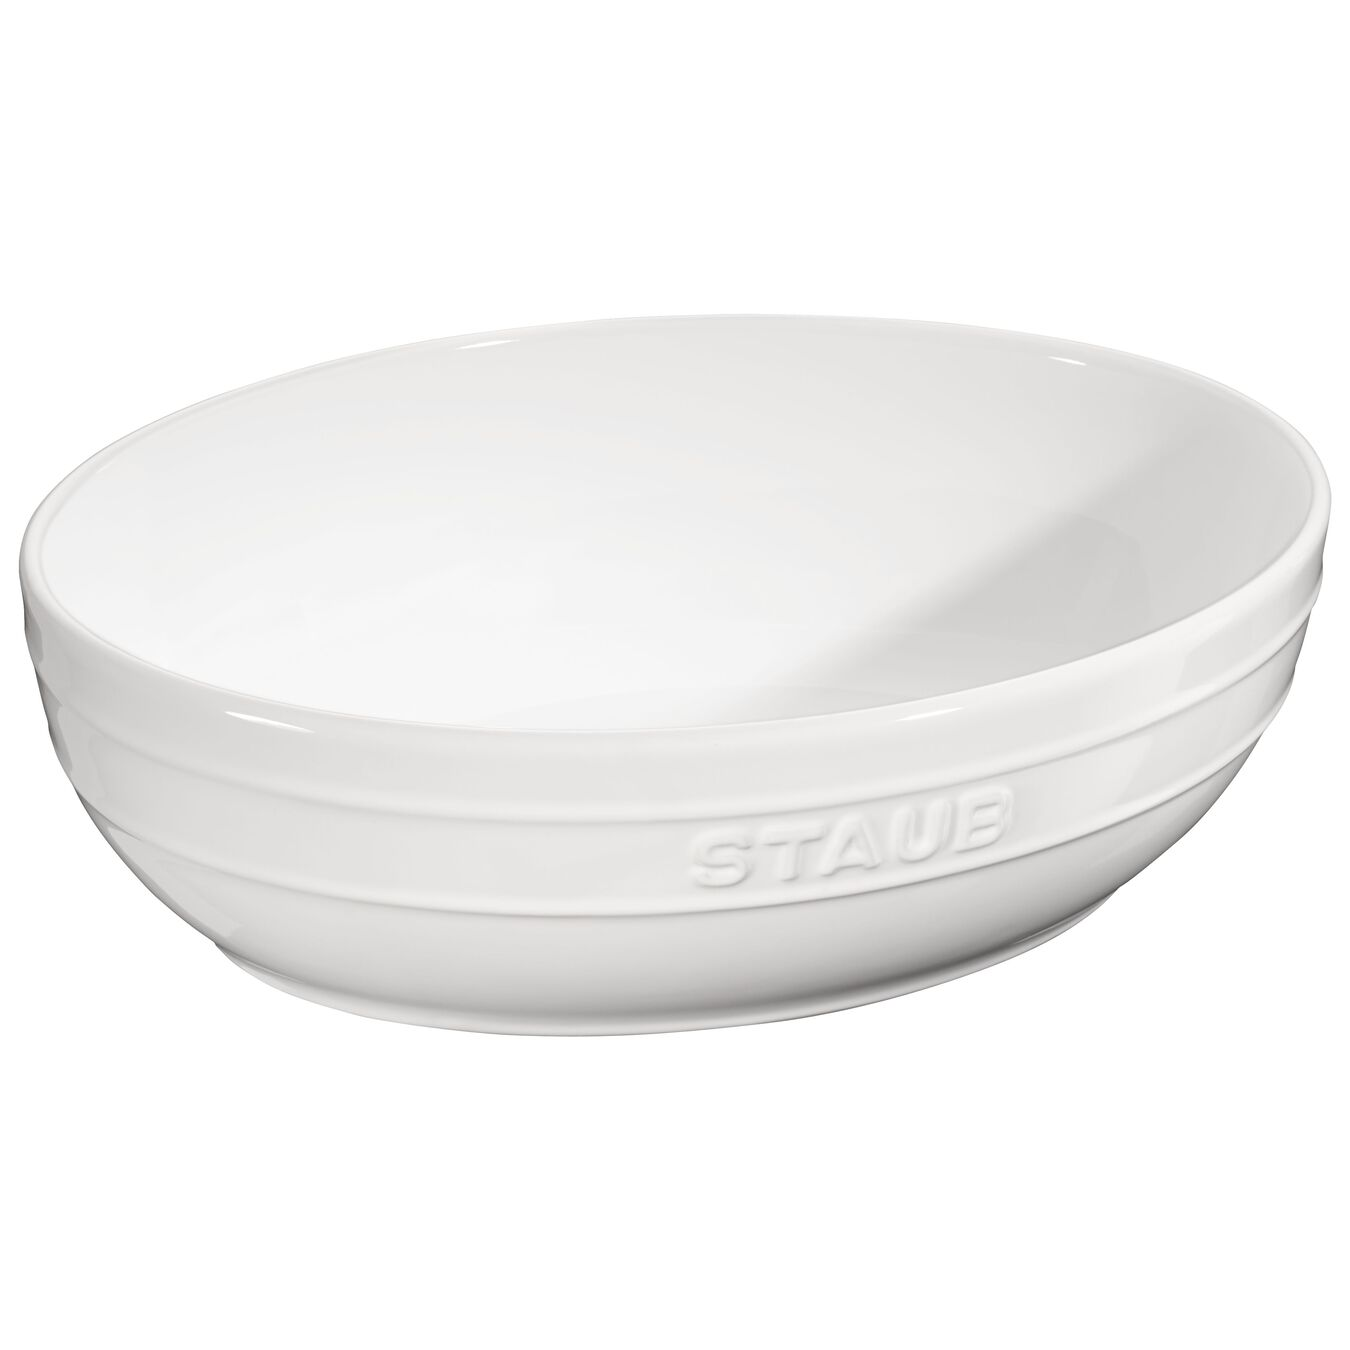 2 Piece Ceramic oval Bowl set, Pure-White,,large 3